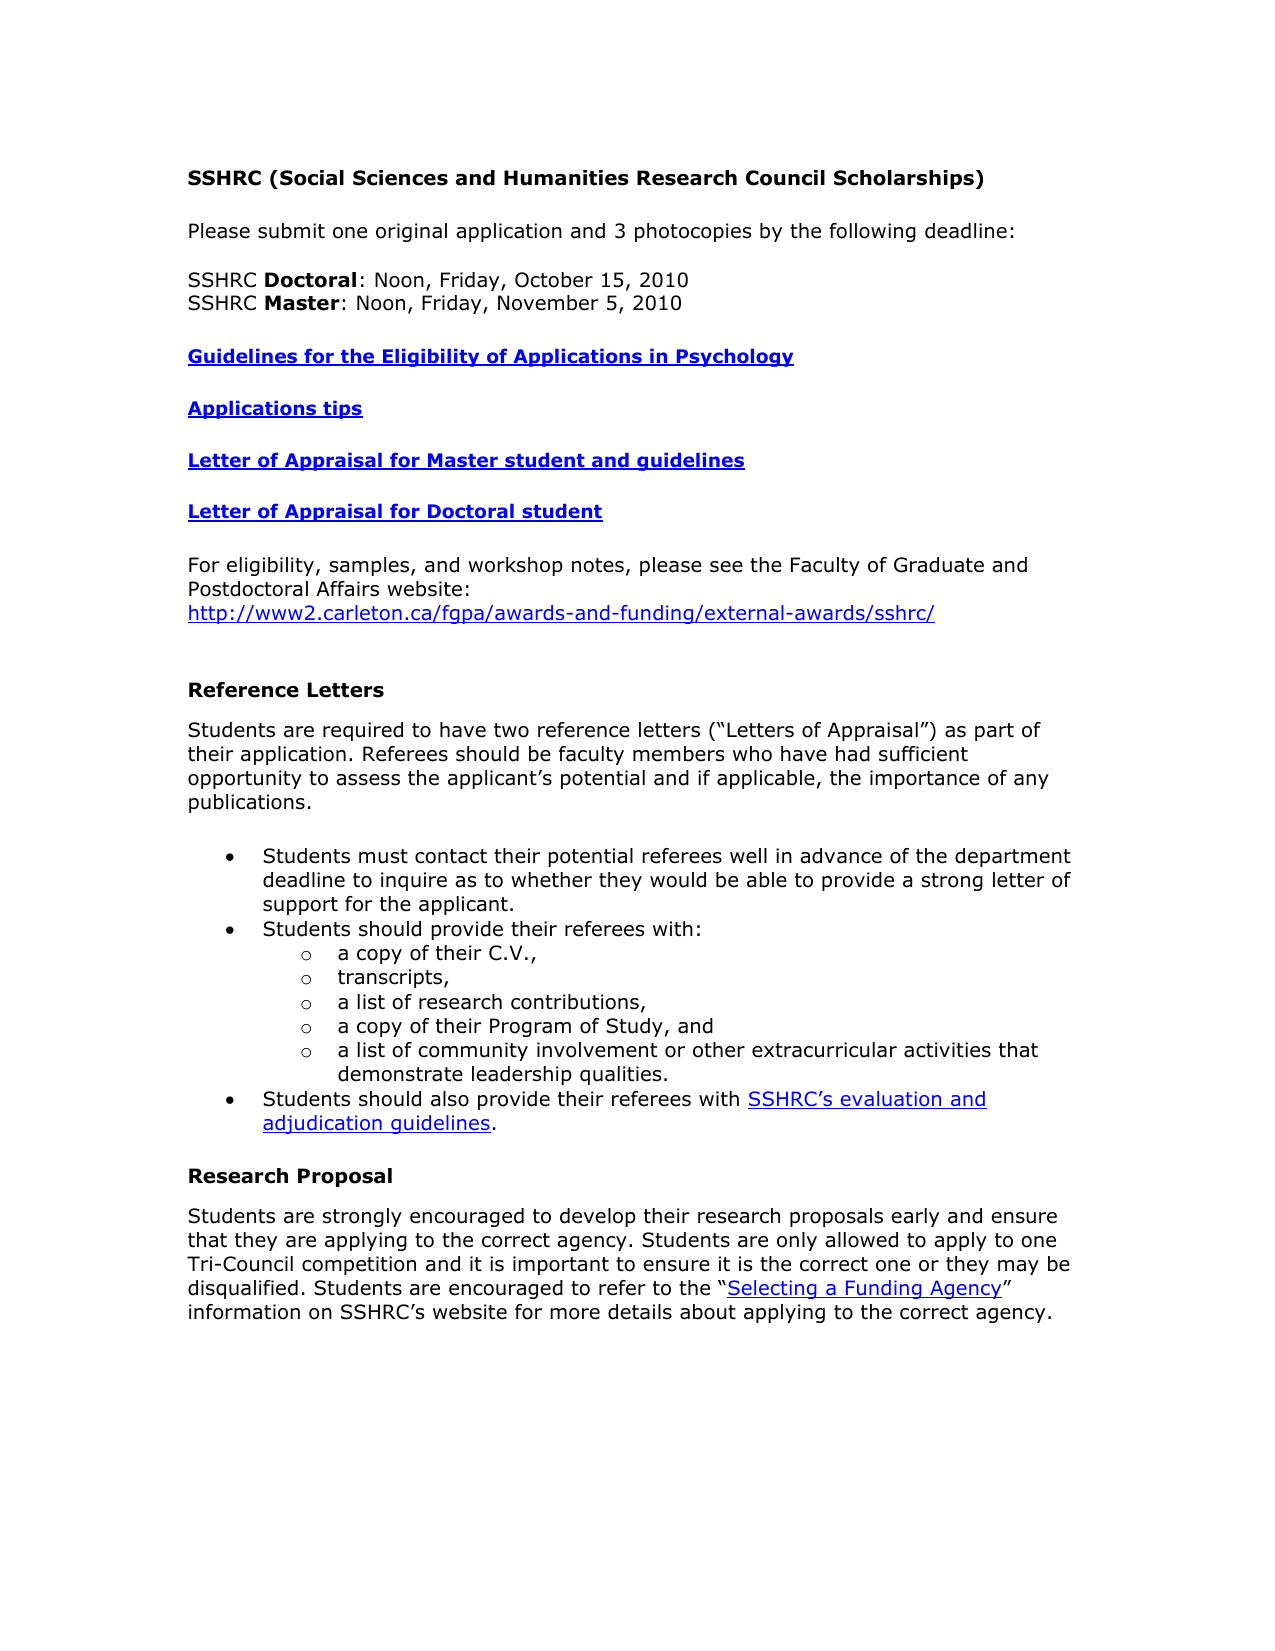 sample research proposal sshrc